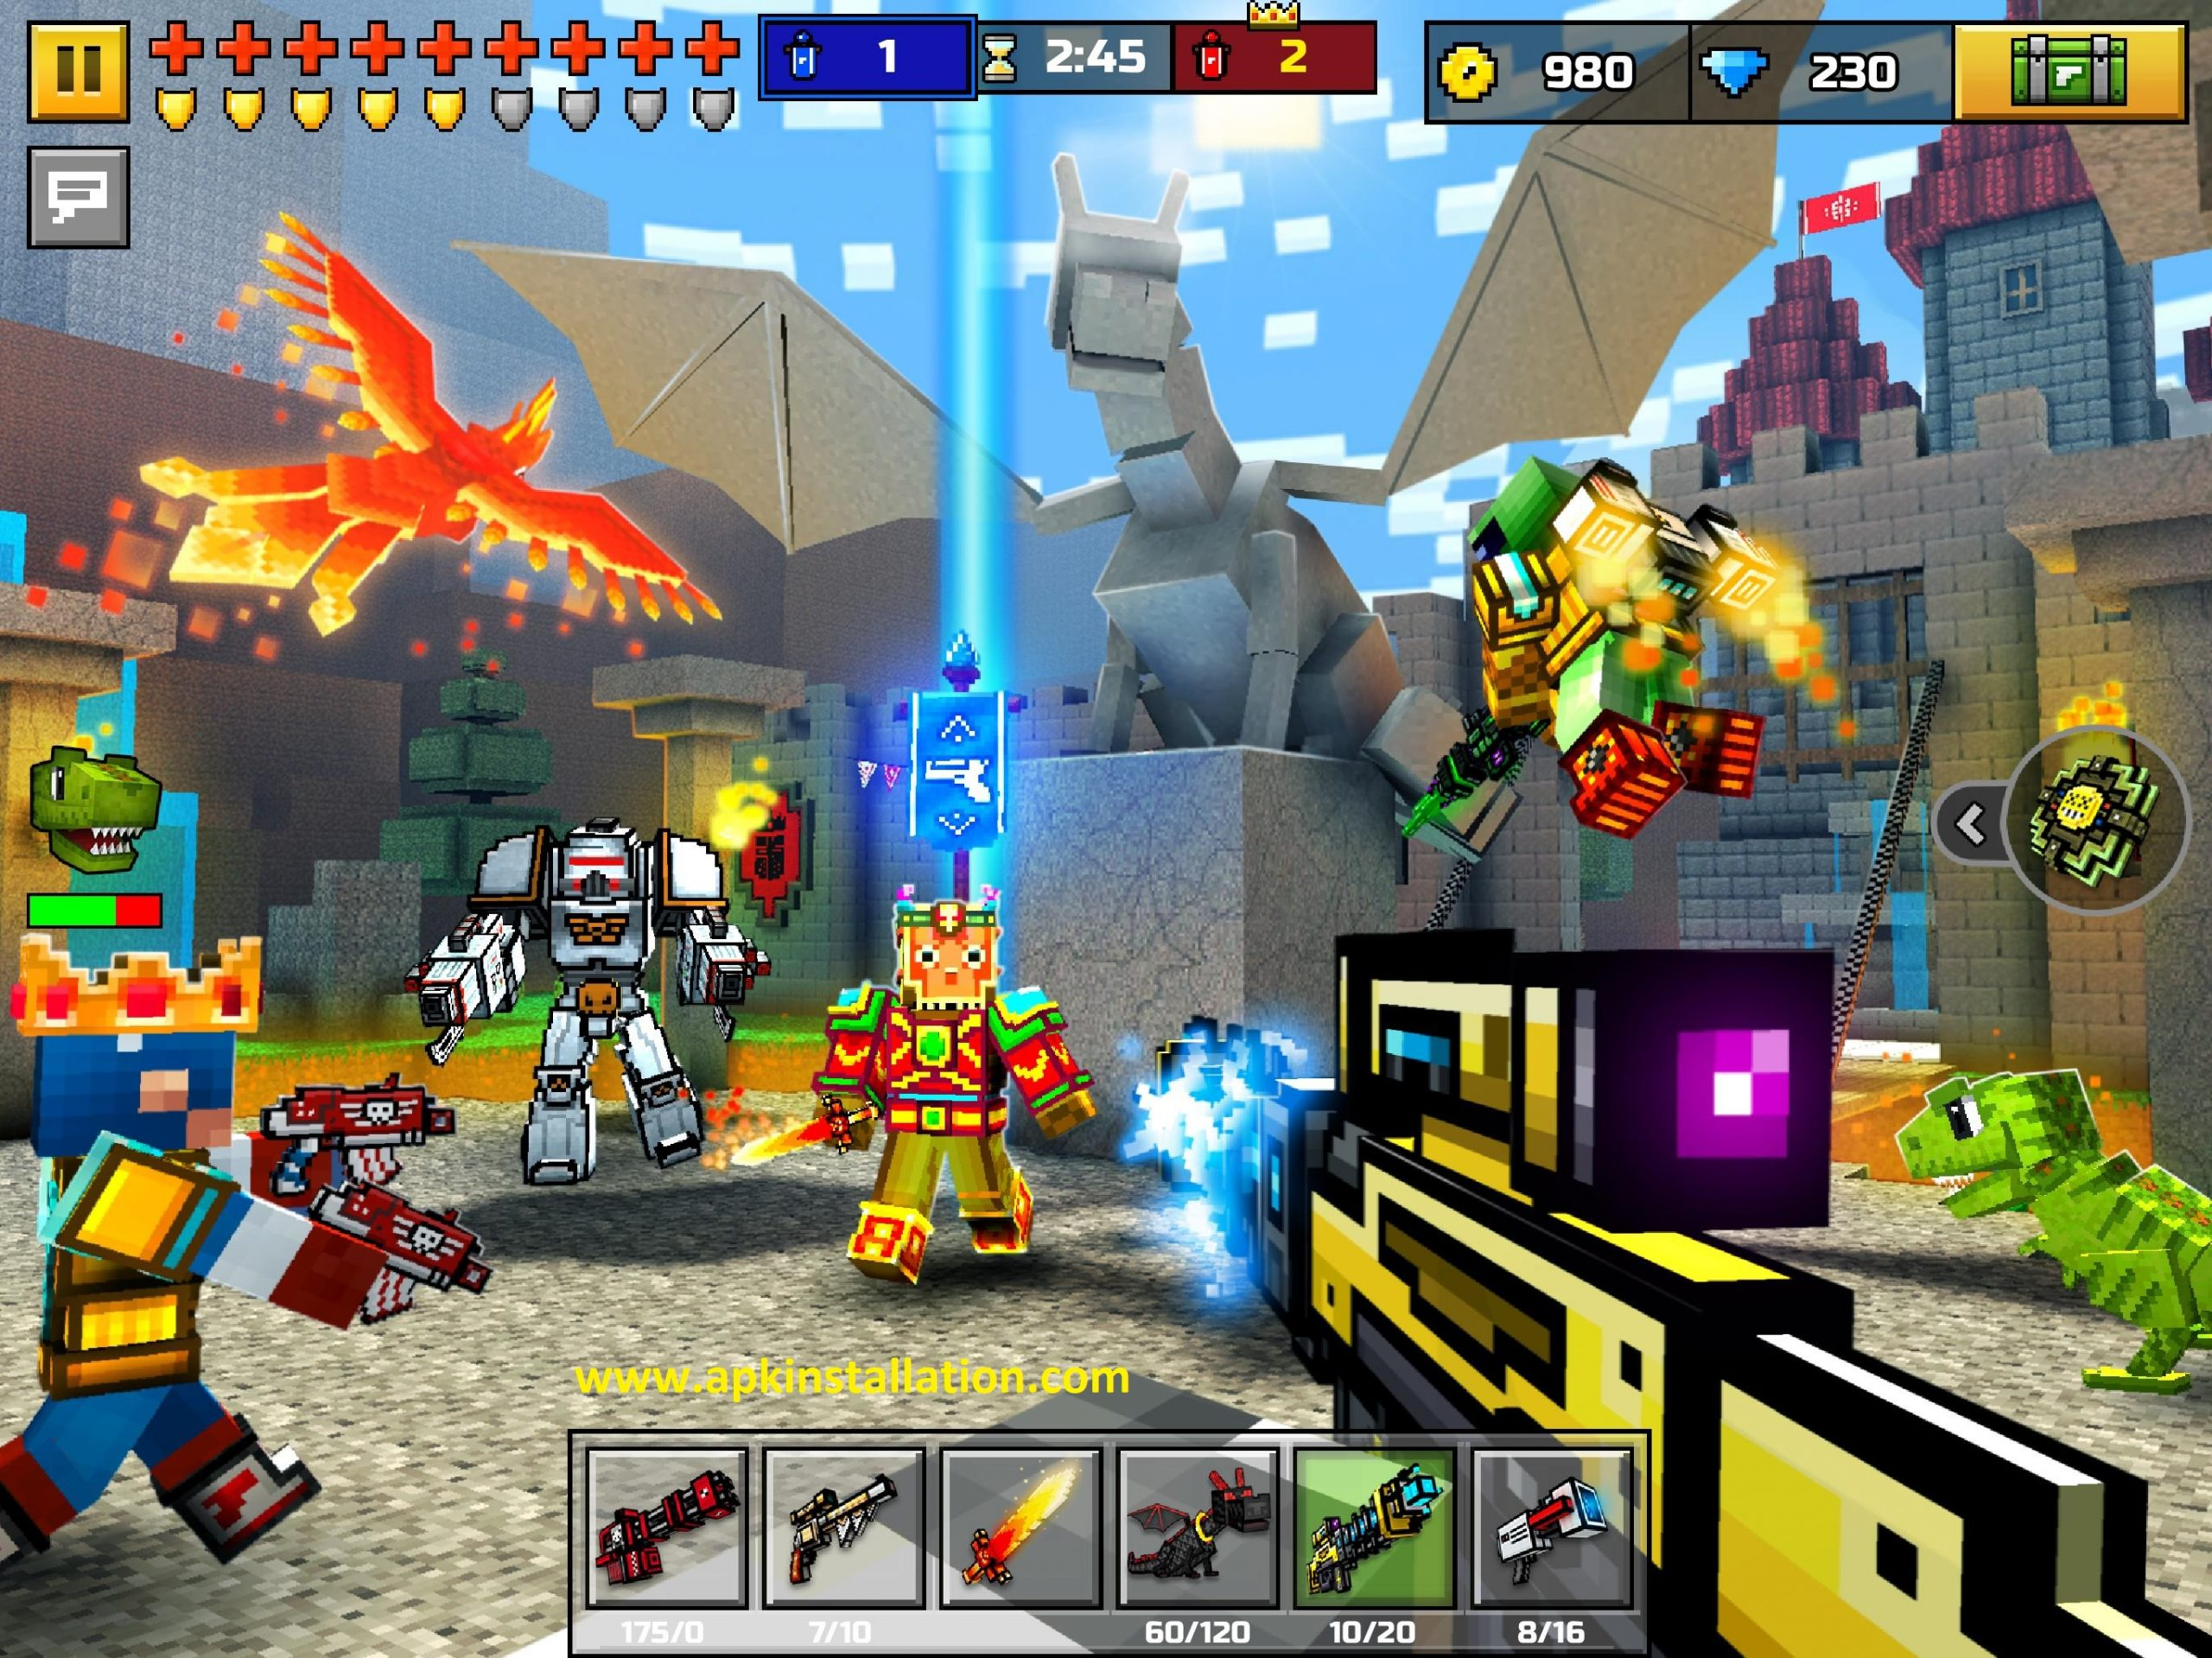 PIXEL GUN 3D GAME FREE DOWNLOAD